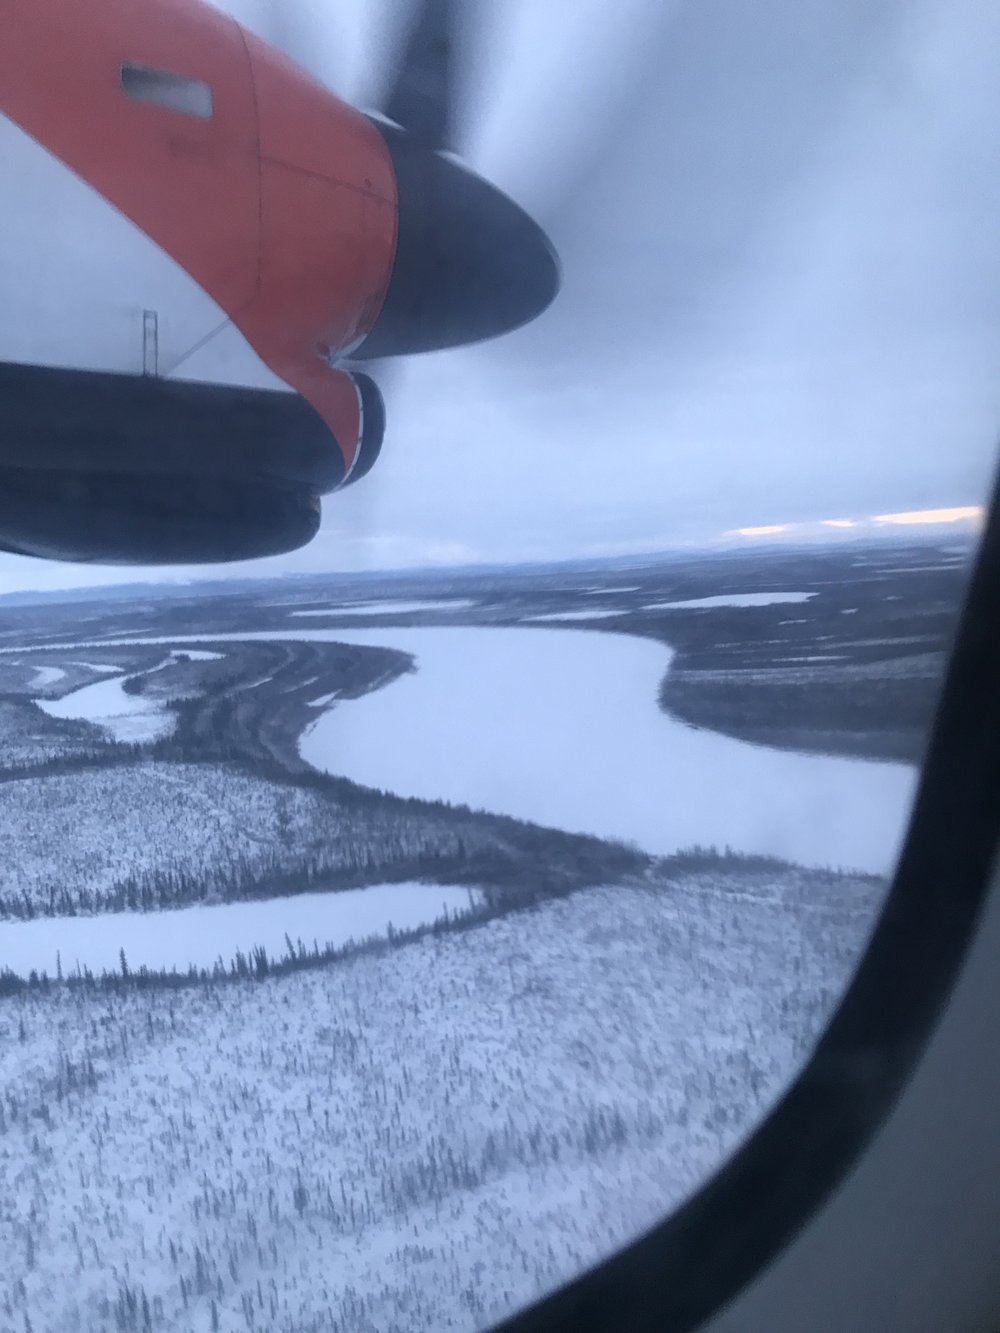 The Porcupine River welcomes us into Old Crow